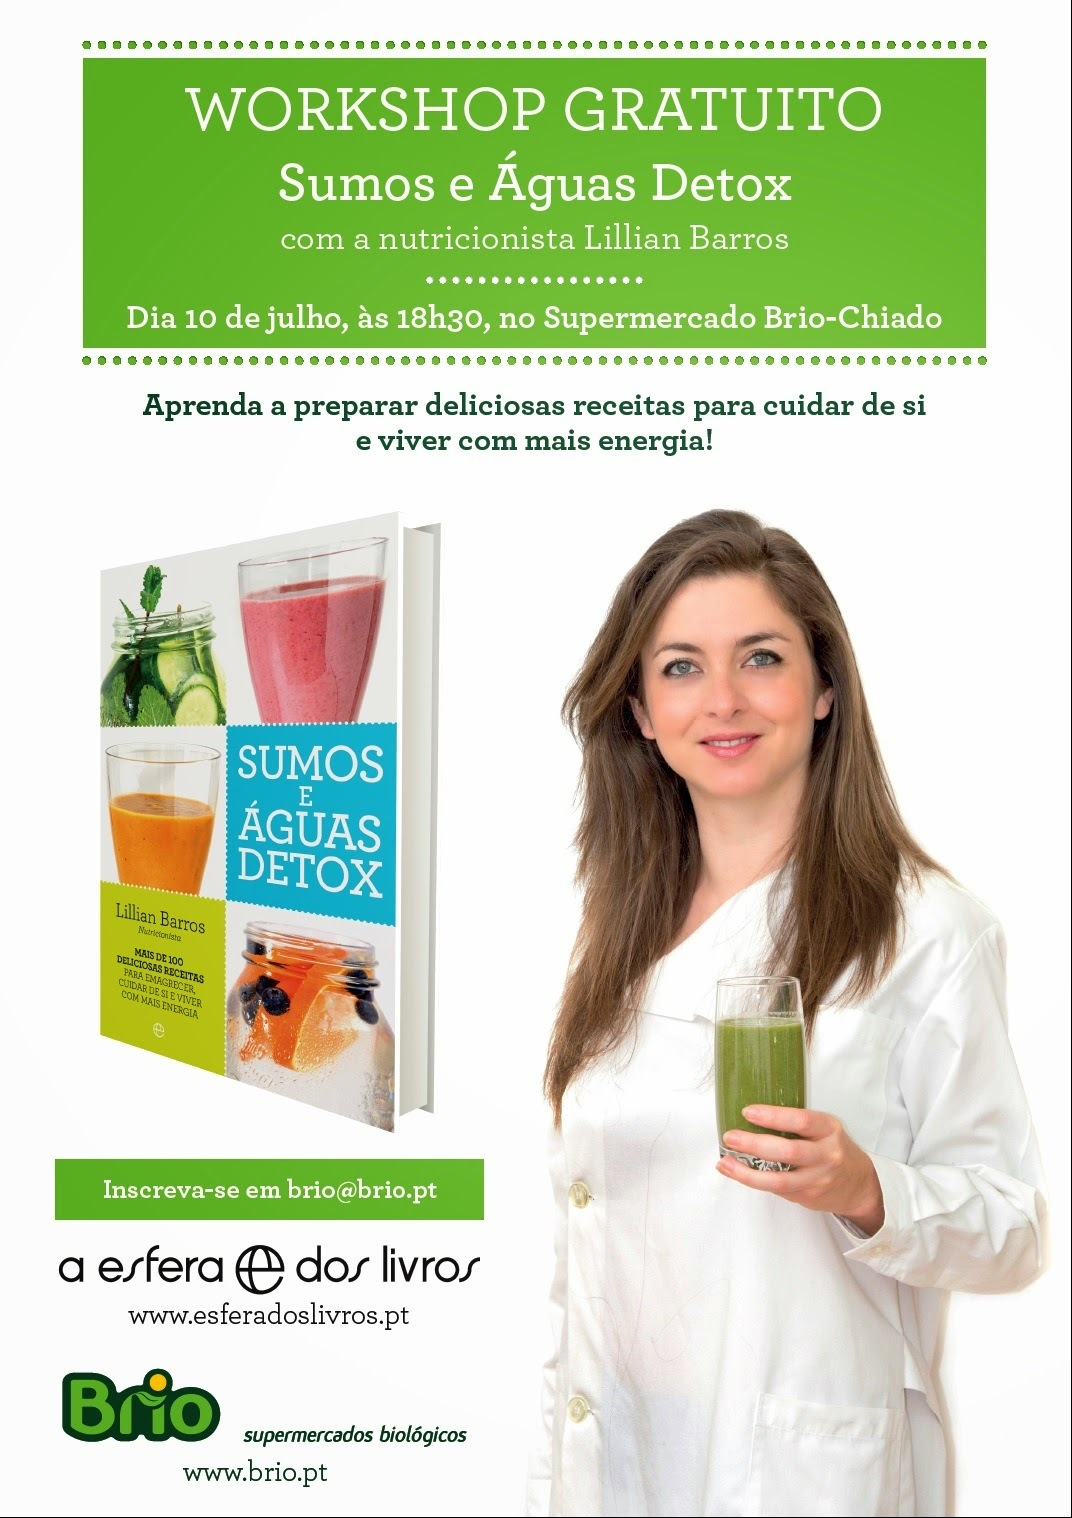 [Dica] Workshop Sumos e águas detox